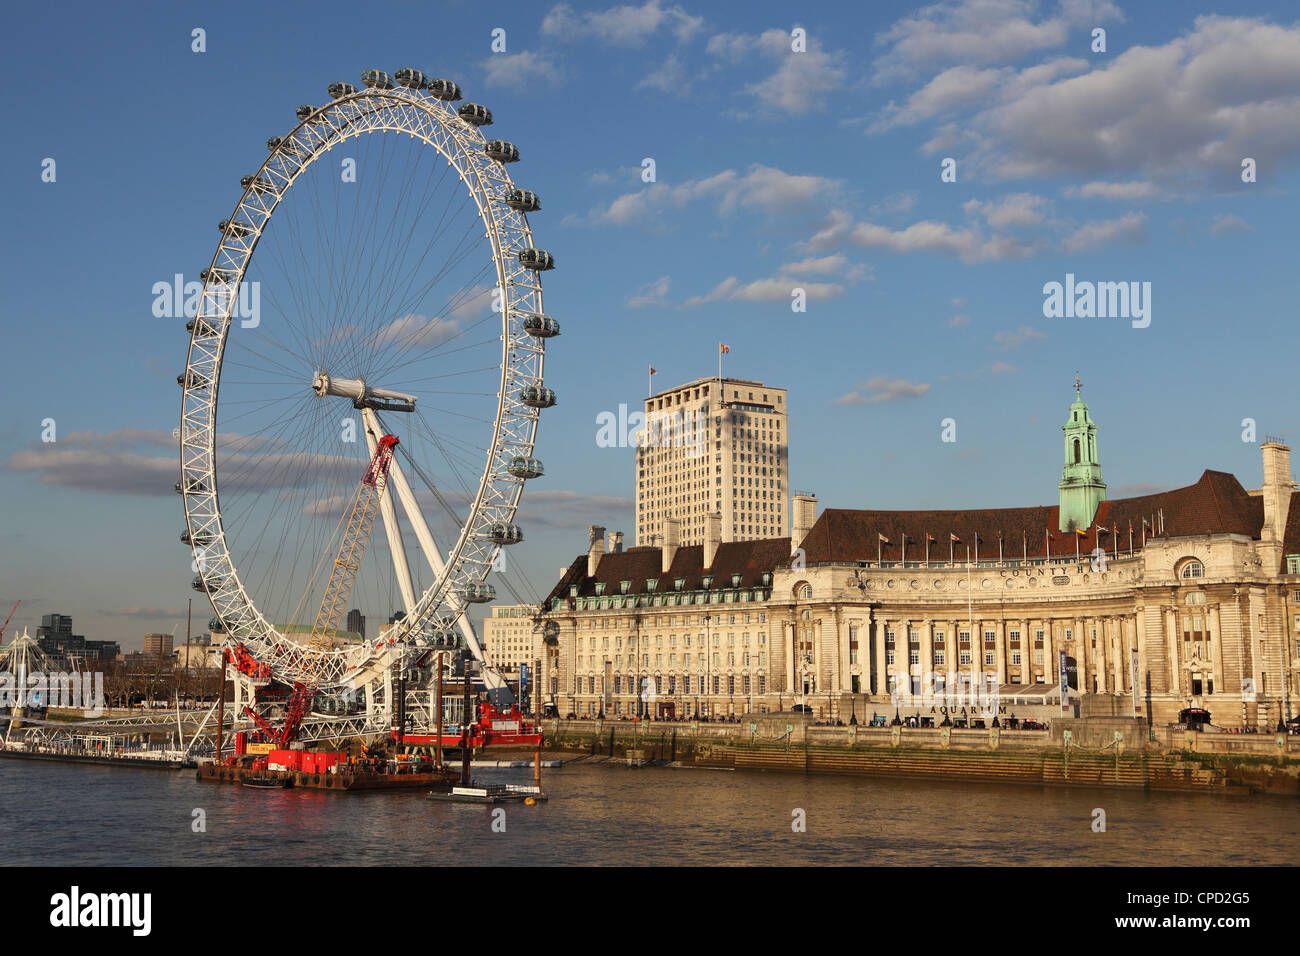 County Hall, home of the London Aquarium, and the London Eye on the South Bank of the River Thames, London, England, - Stock Image